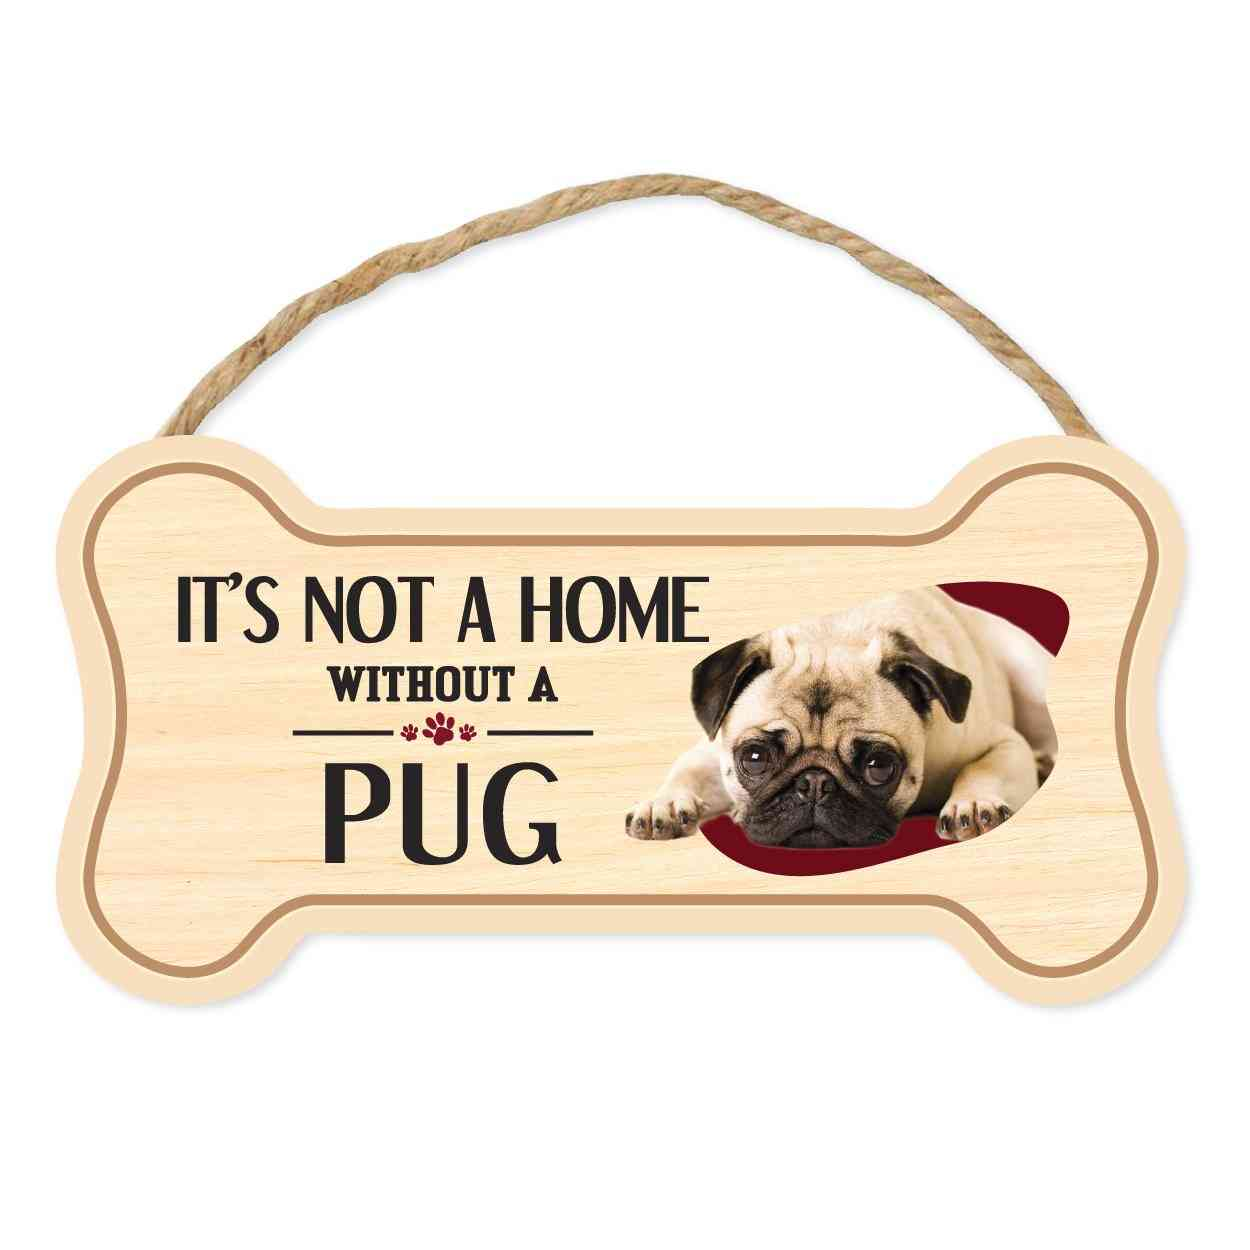 Sign, Wood, Dog Bone, It's Not A Home Without A Pug, 10